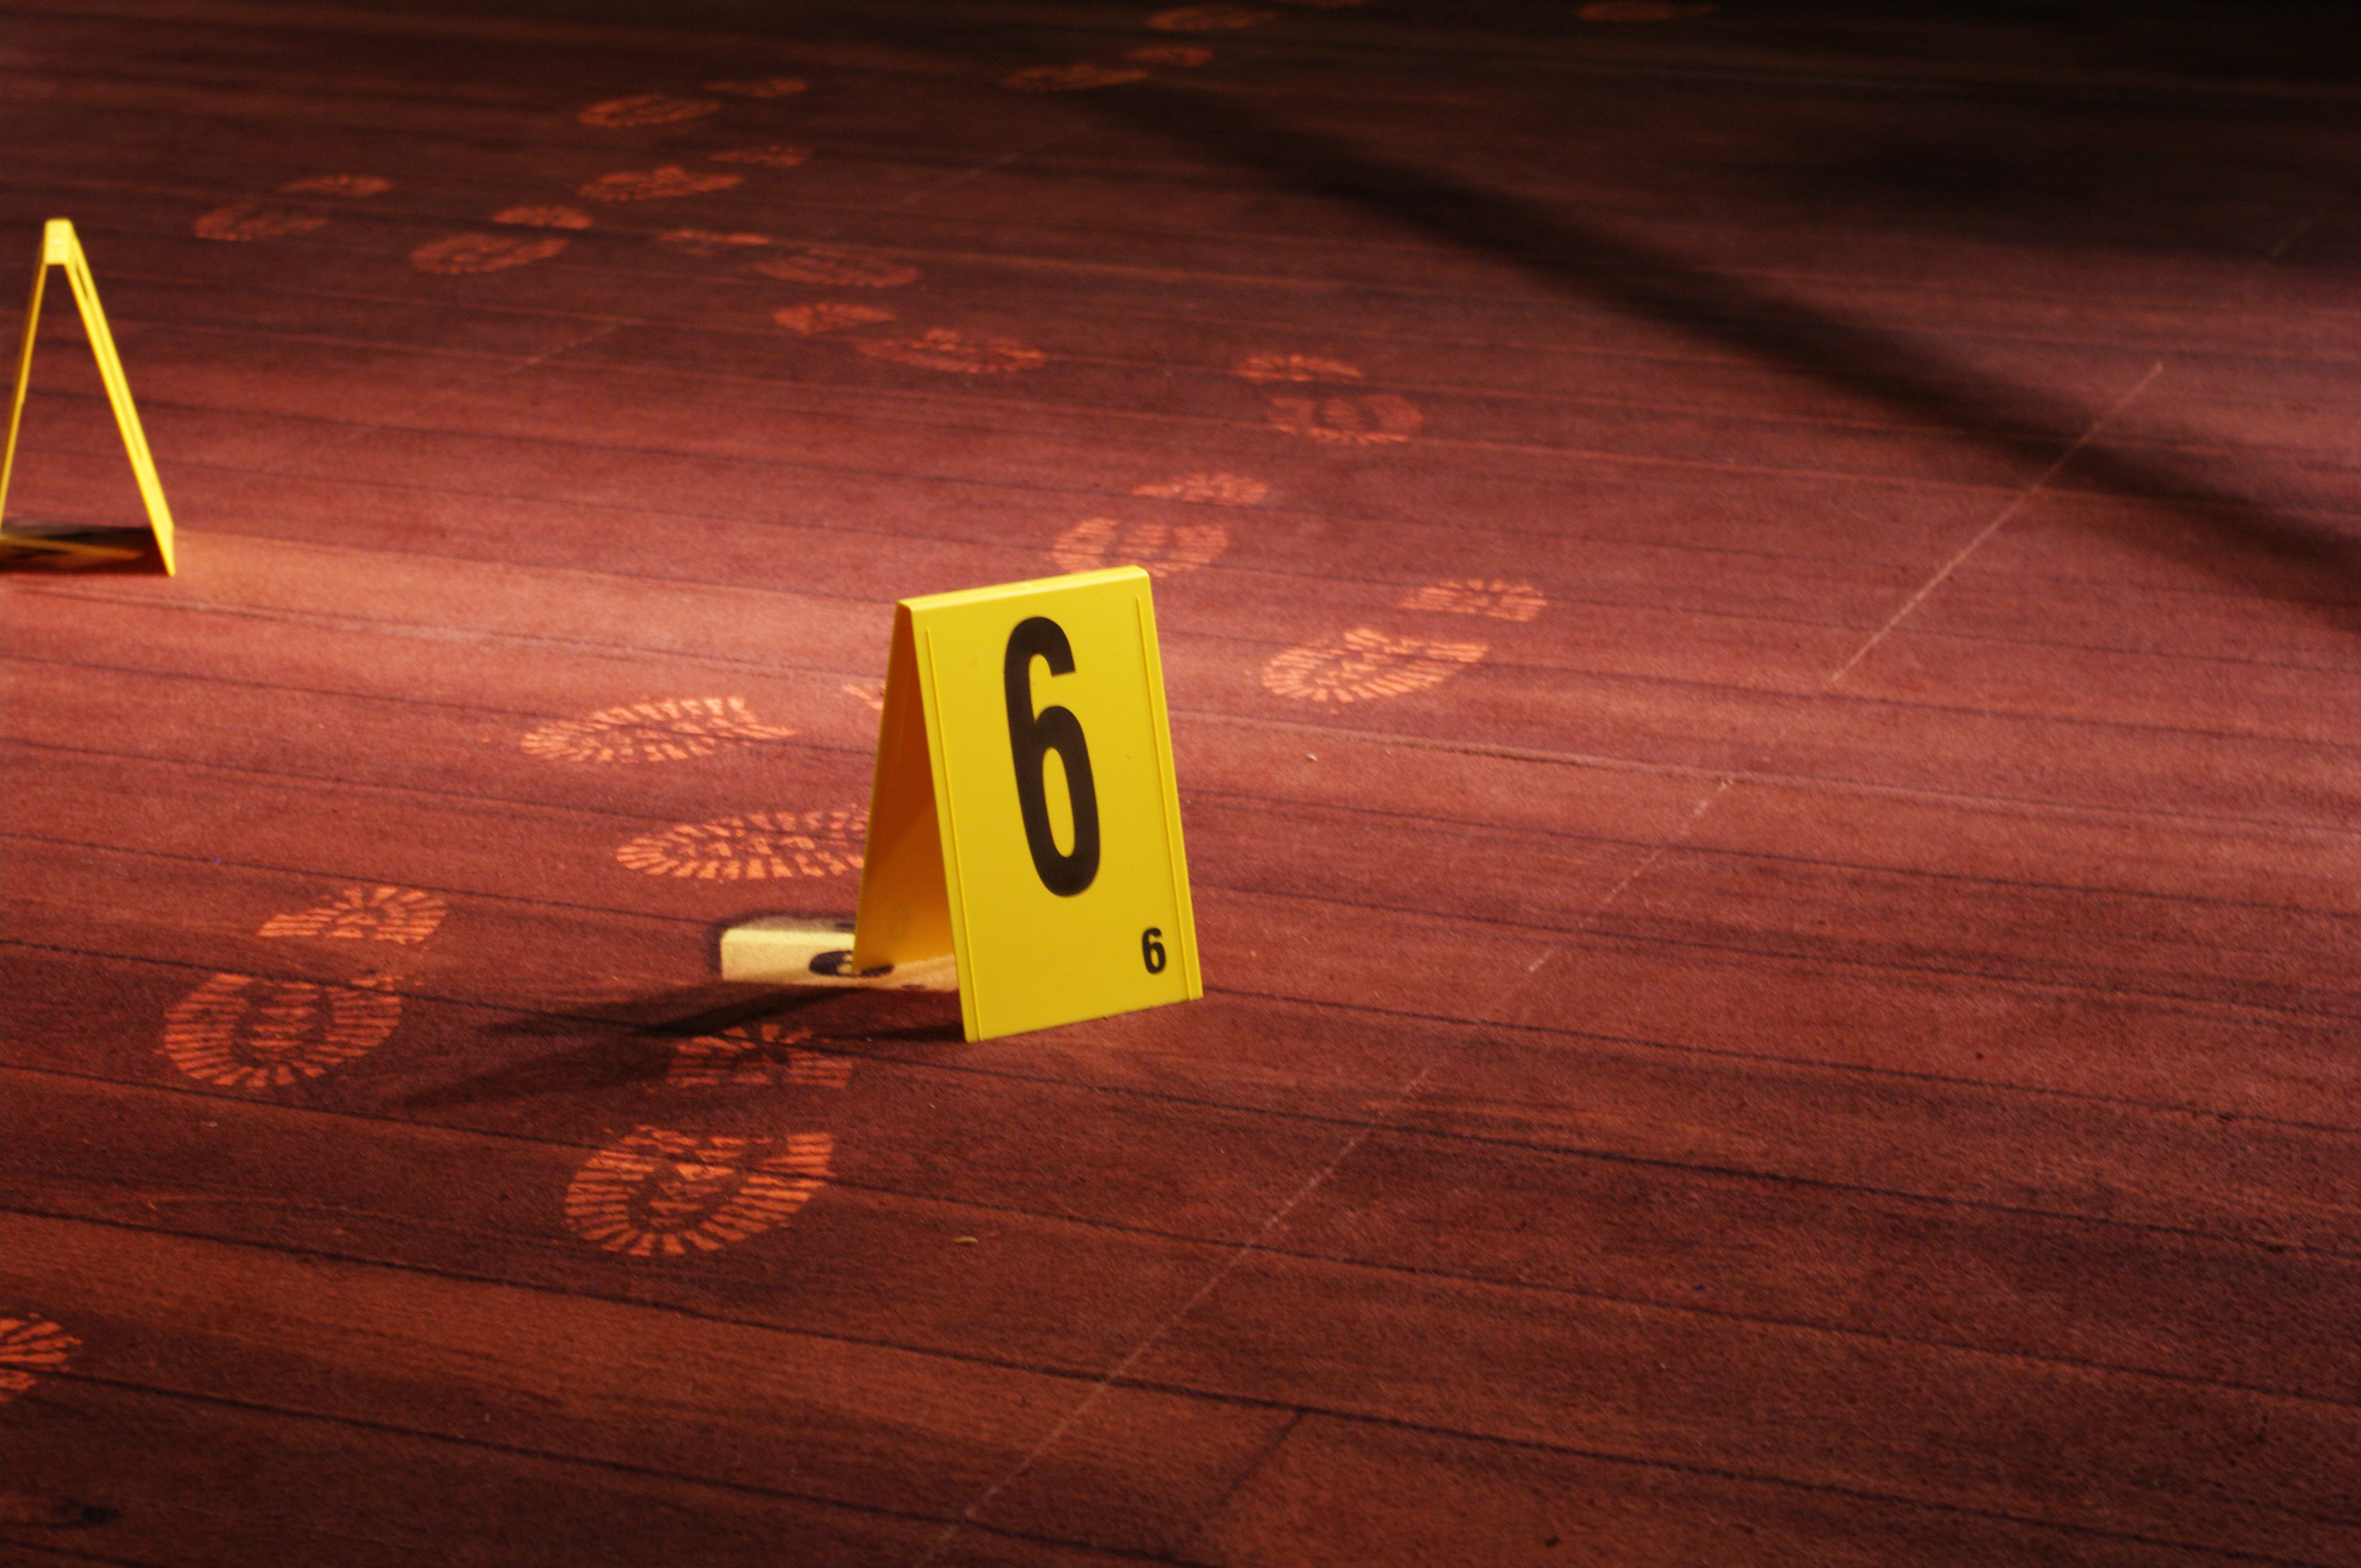 Crime scene investigation, Cops, Mort, Victim, Scene, HQ Photo